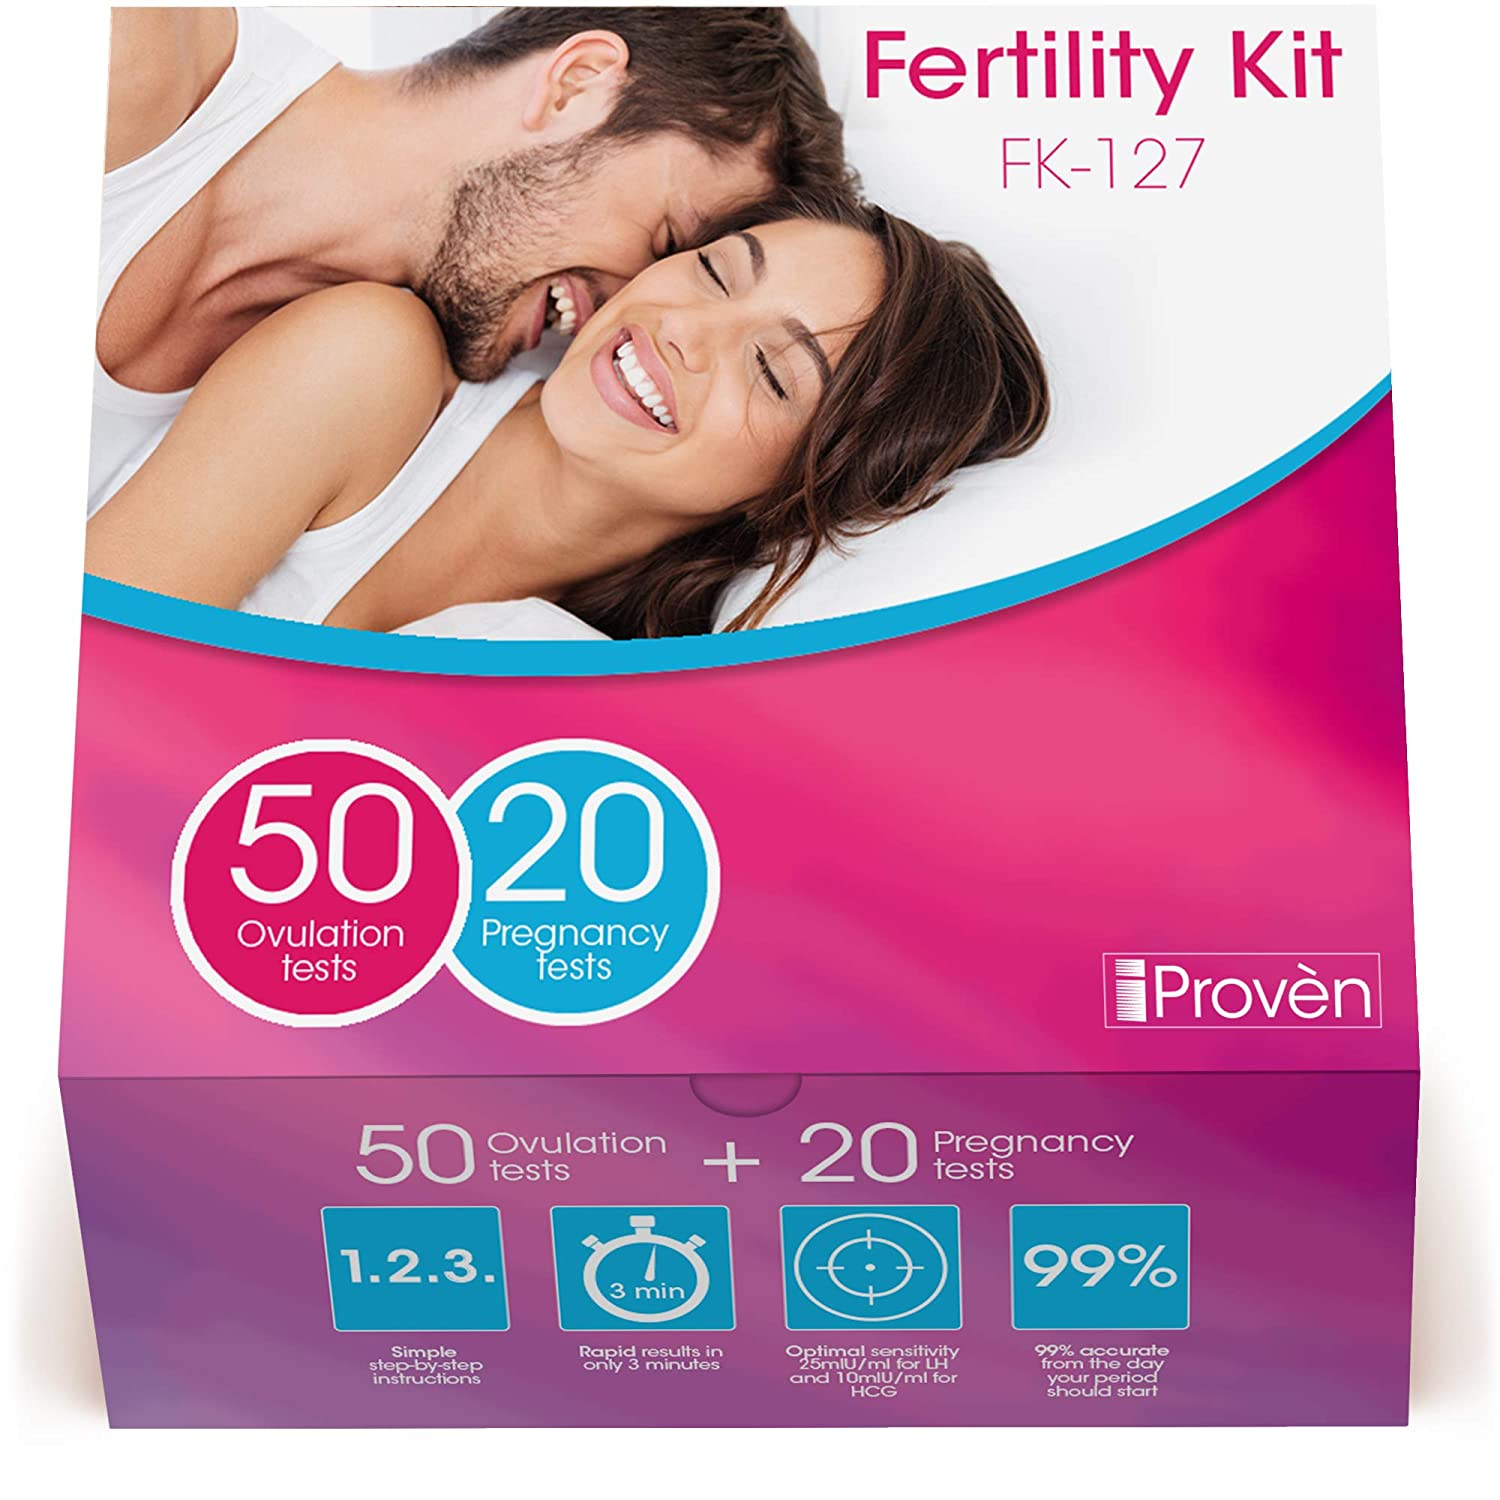 Ovulation Test Strips and Pregnancy Test Kit - 50 LH and 20 Hcg - OPK Ovulation Predictor Kit iProven FK-127 (50 LH & 20 Hcg) iProvèn